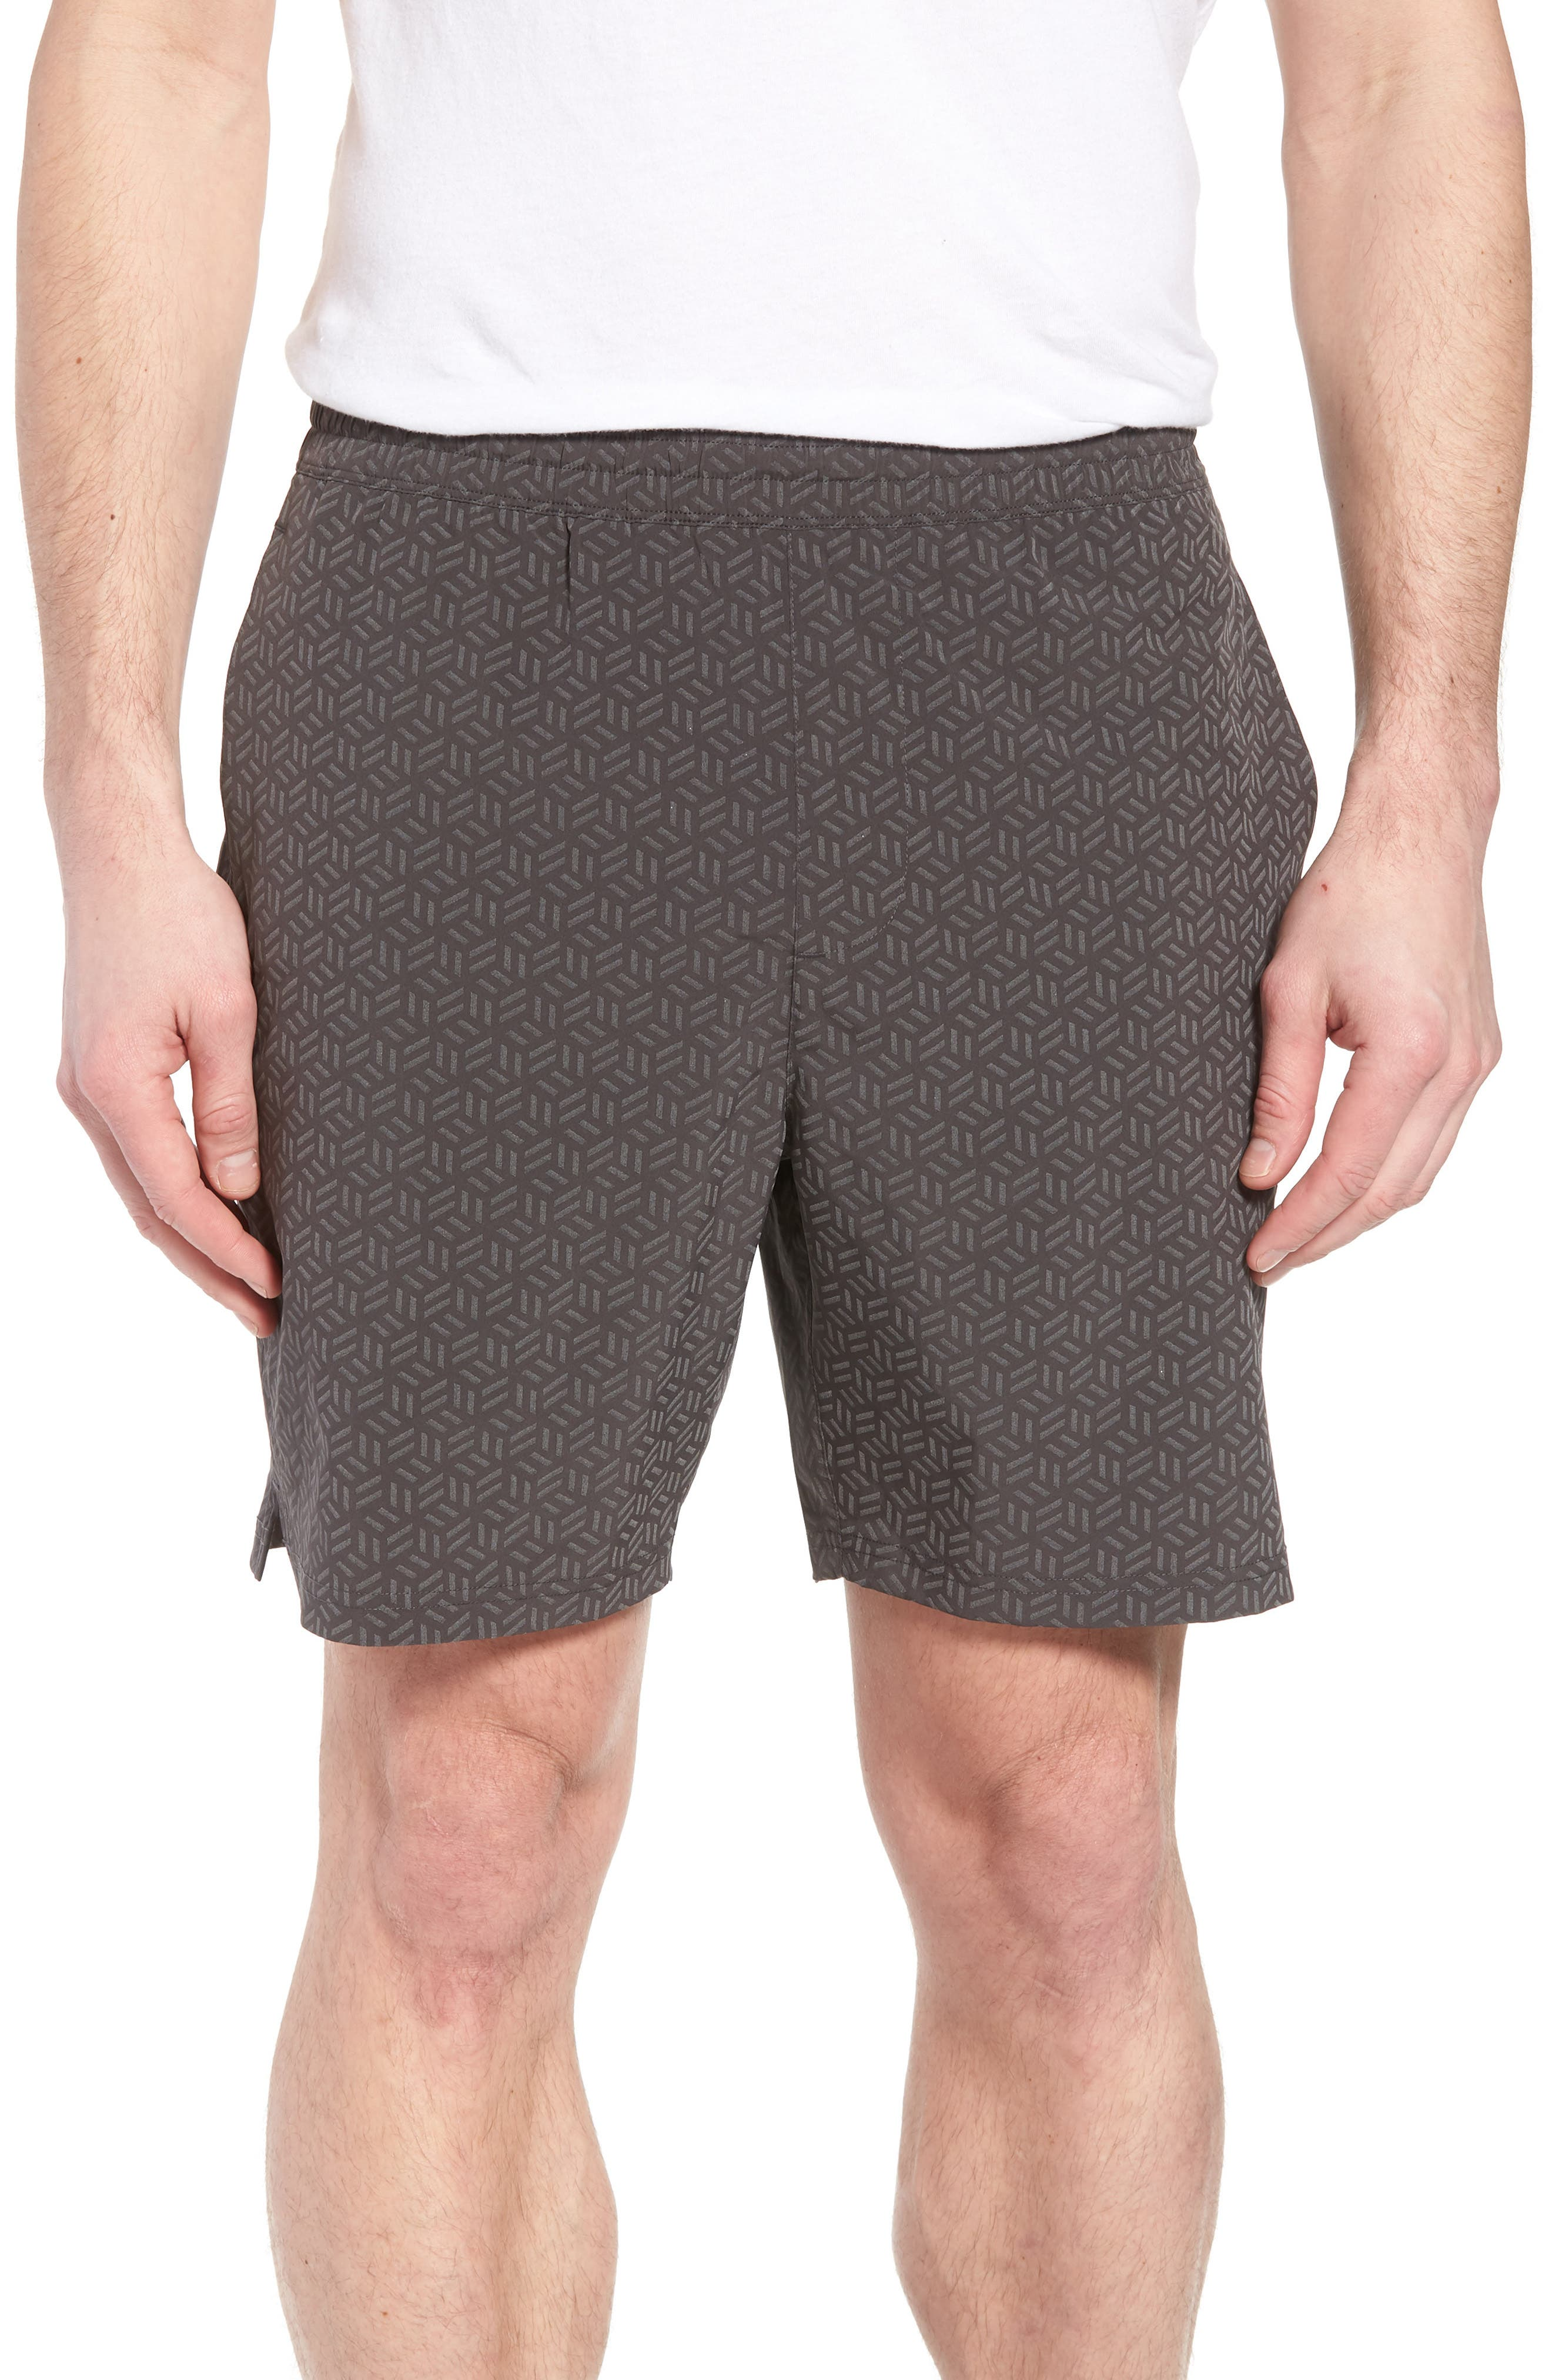 Stretch Shorts,                             Main thumbnail 1, color,                             REFLECTIVE CUBE GEO